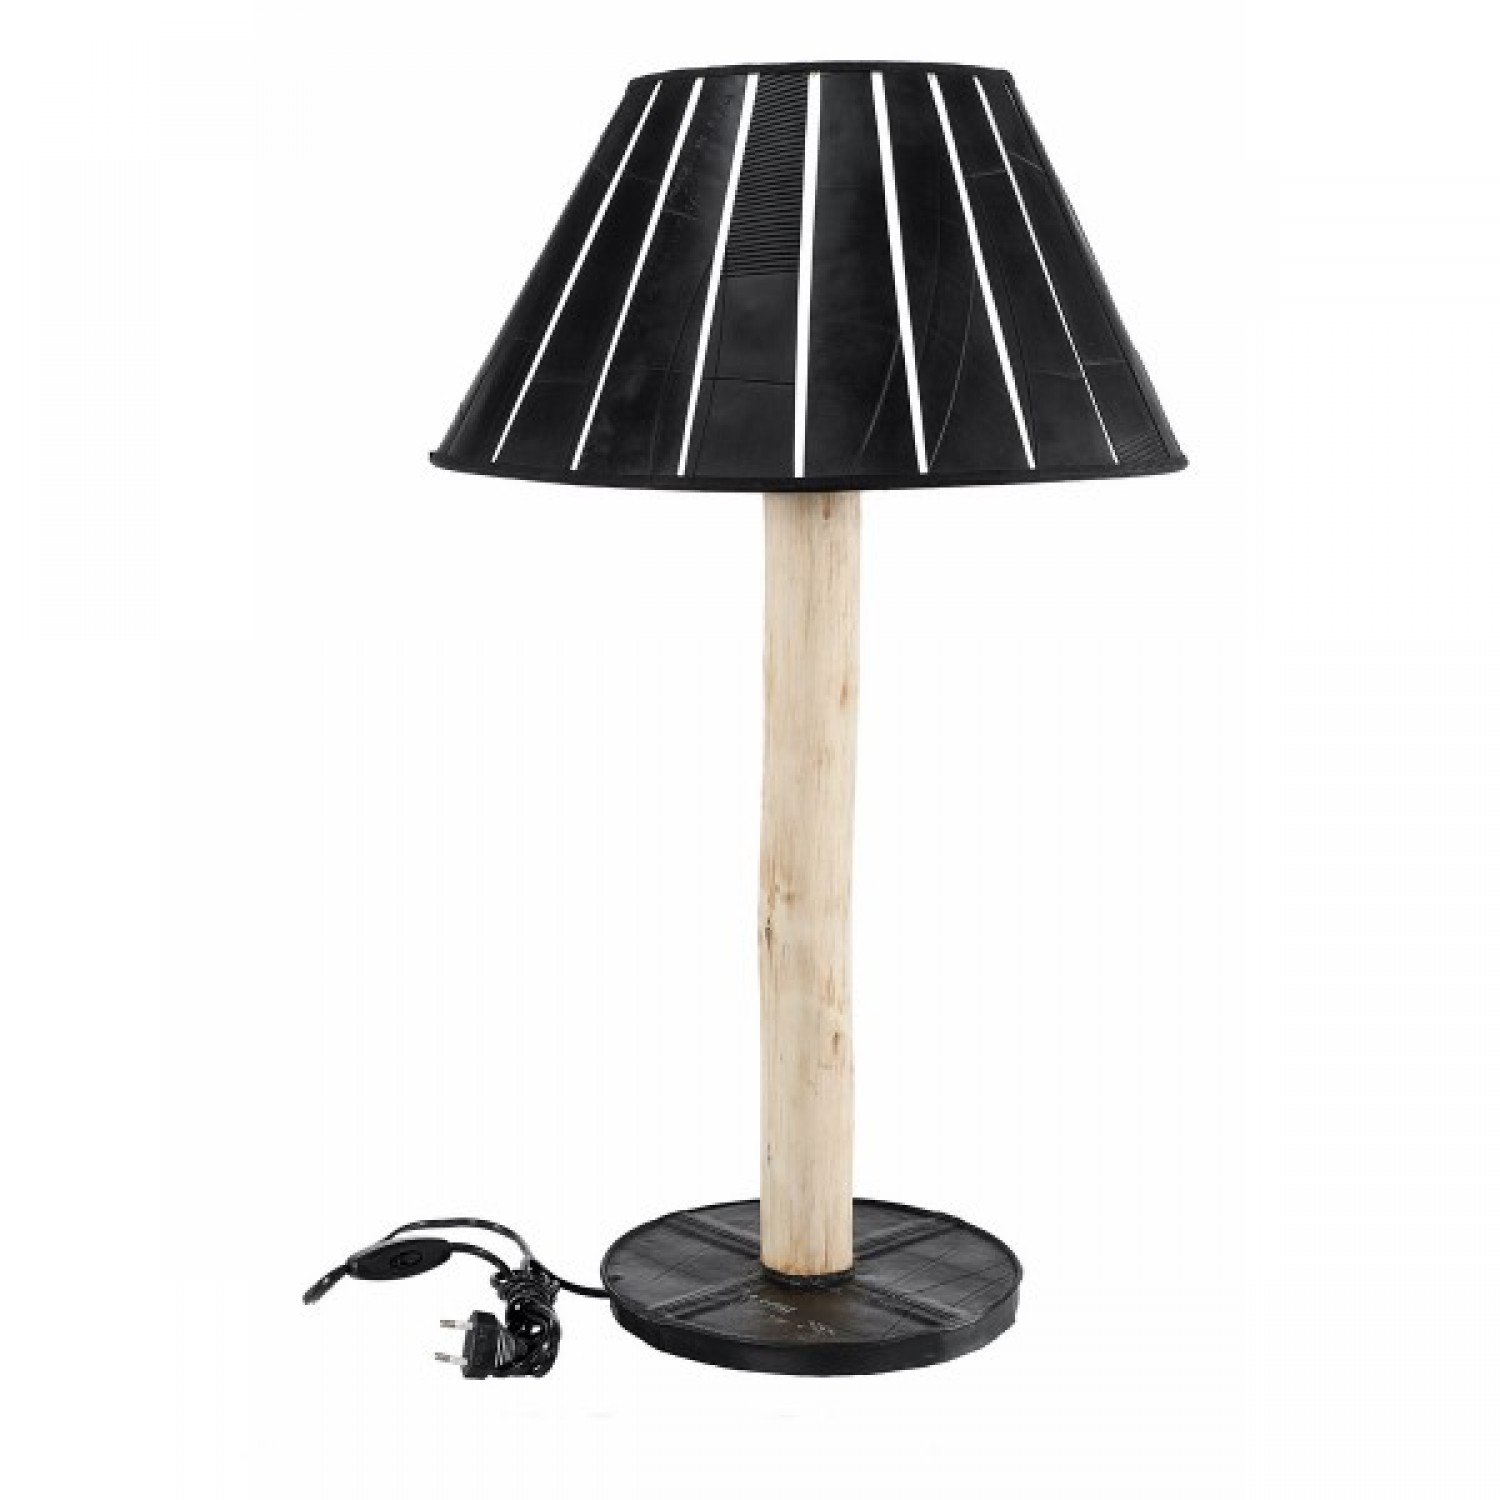 pedestal table lamp of upcycled materials